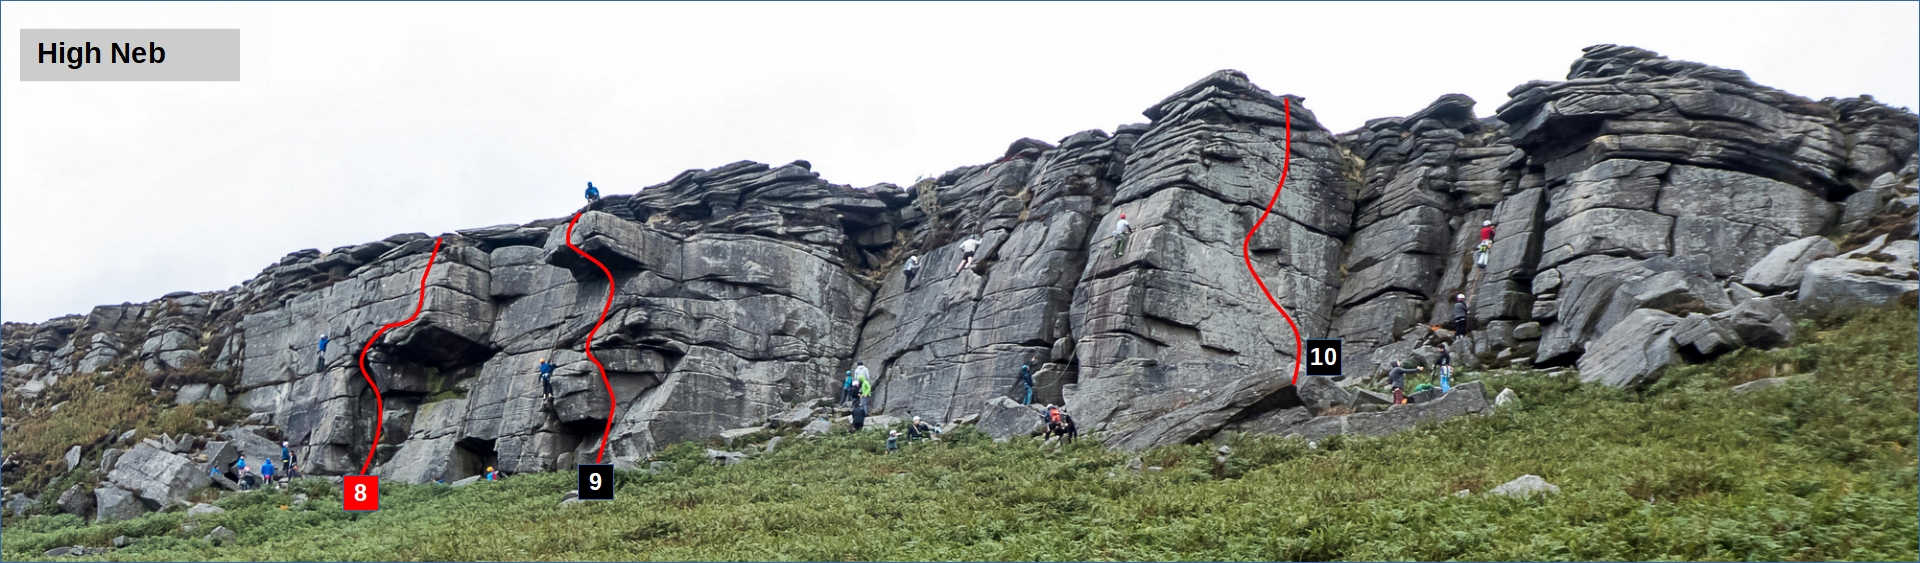 Stanage High Neb climbing topo and guide